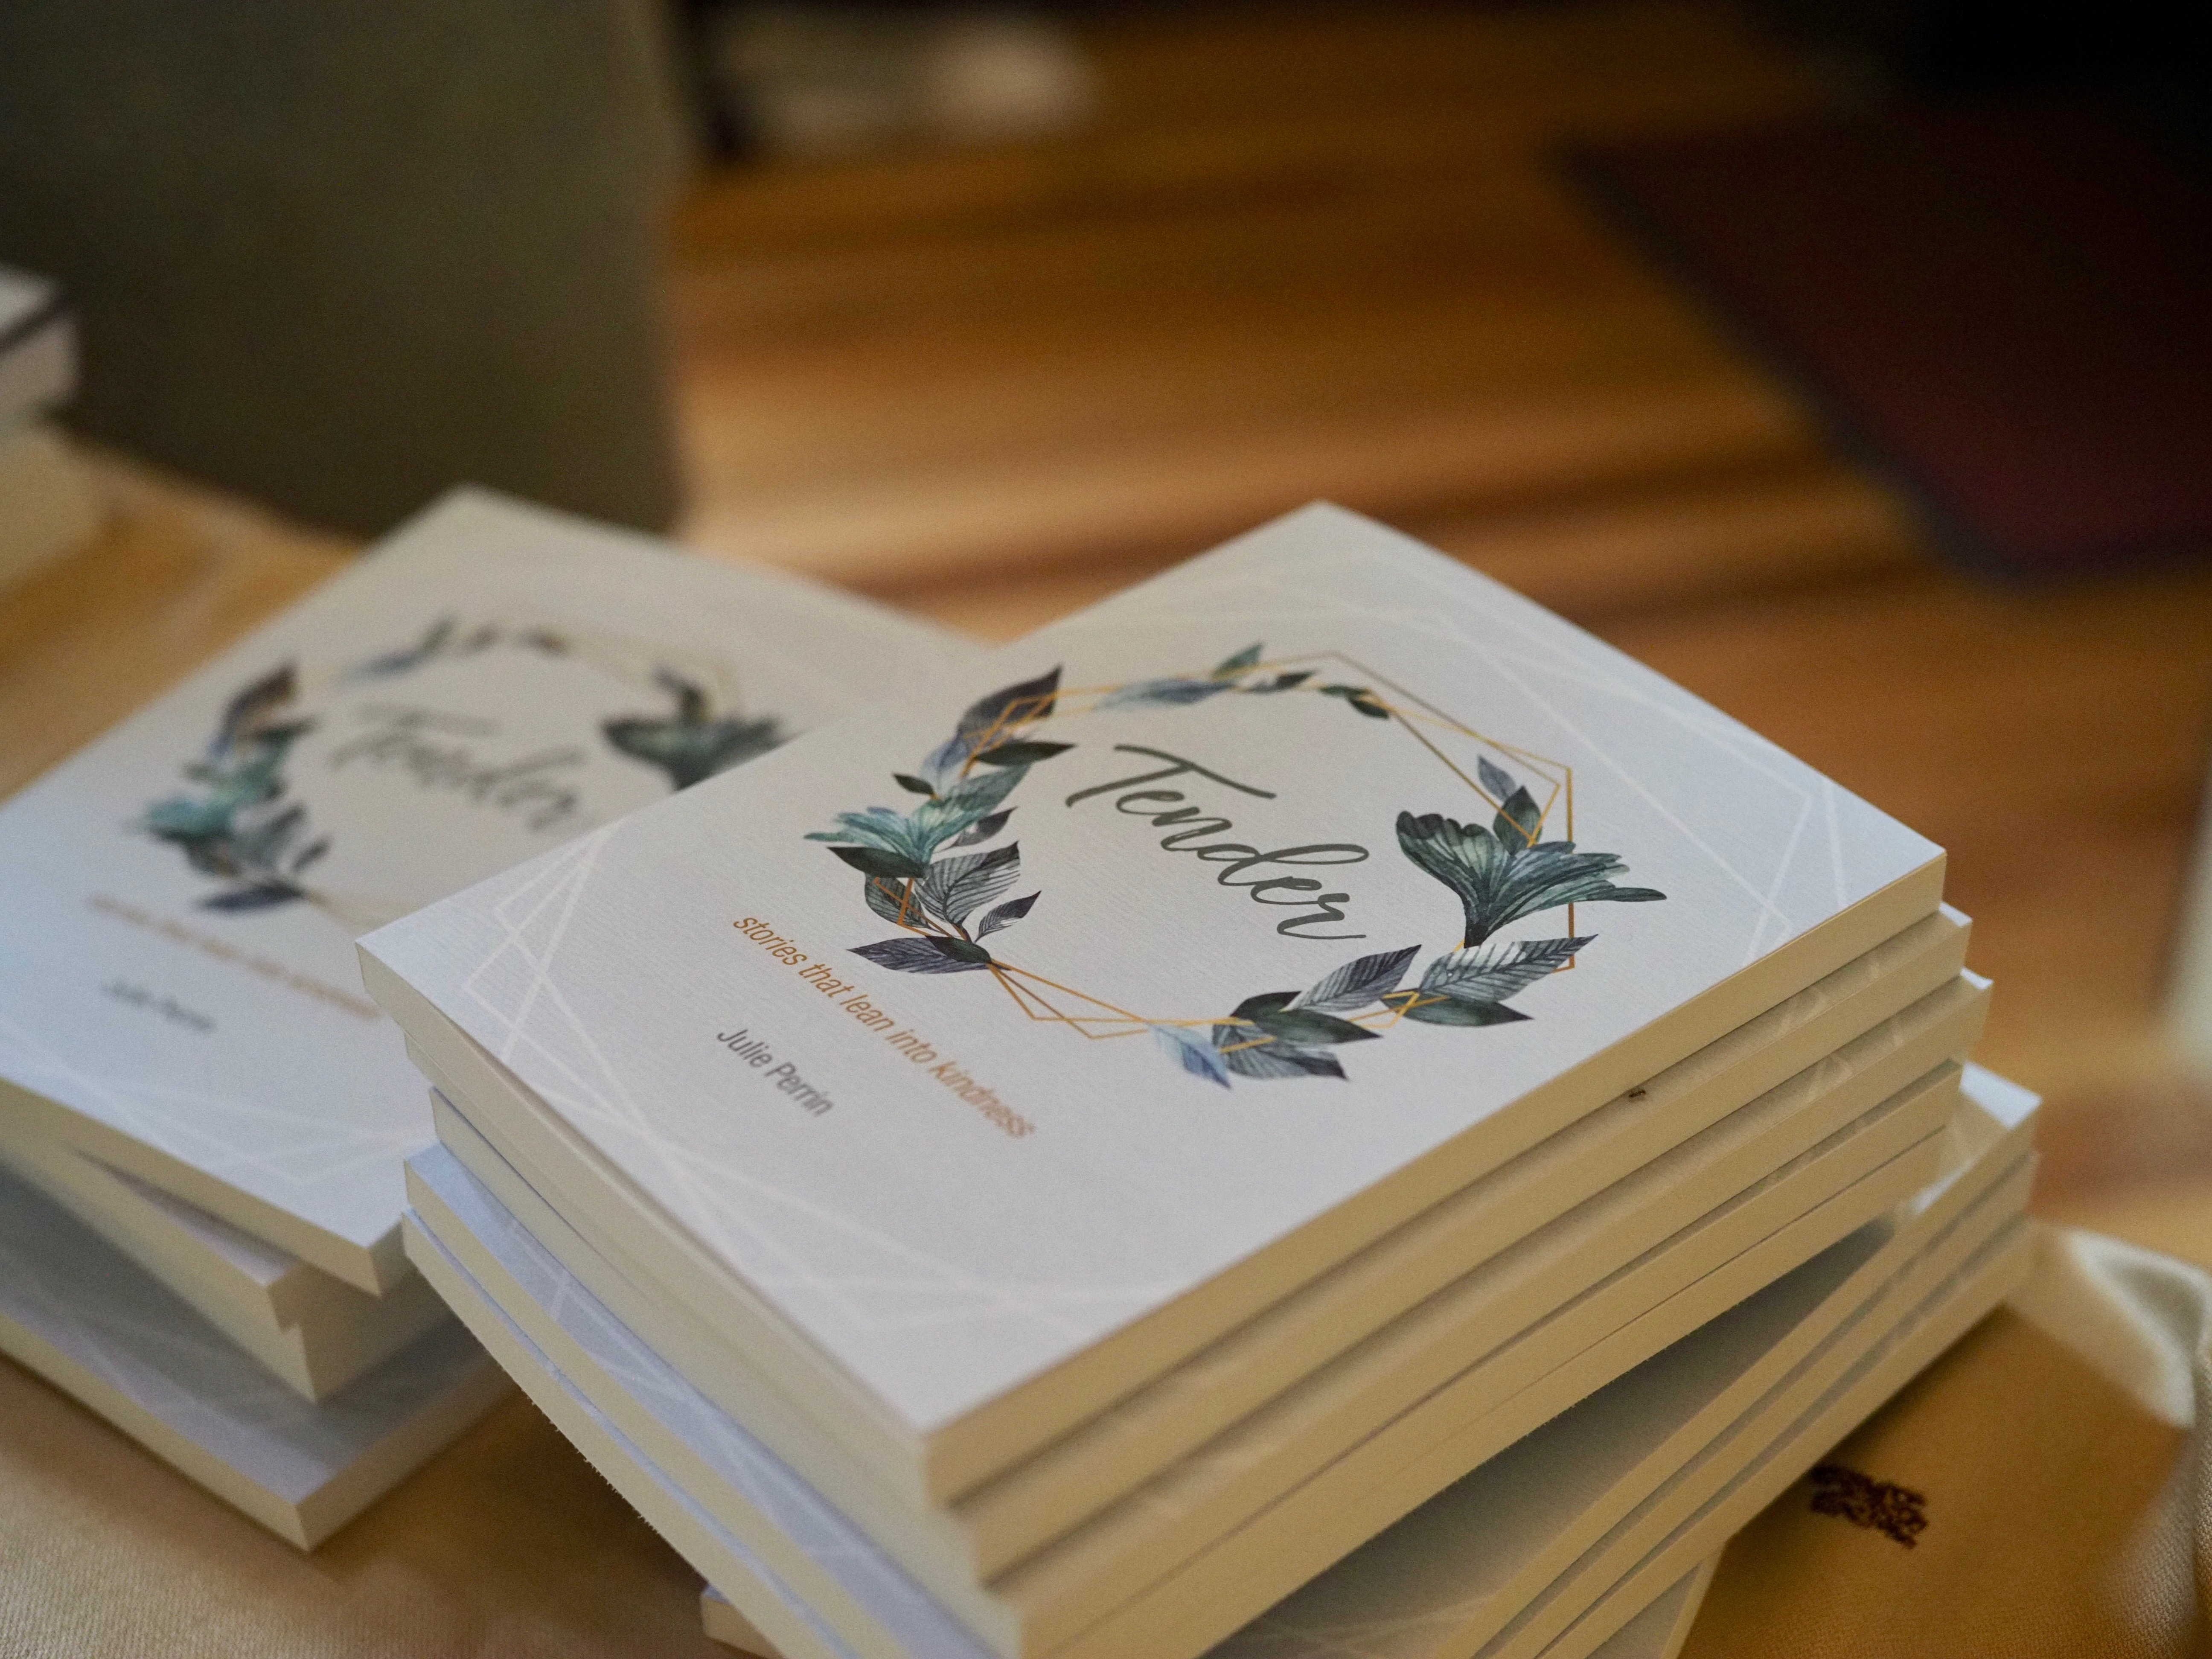 copies of the book 'Tender, stories that lean into kindness'